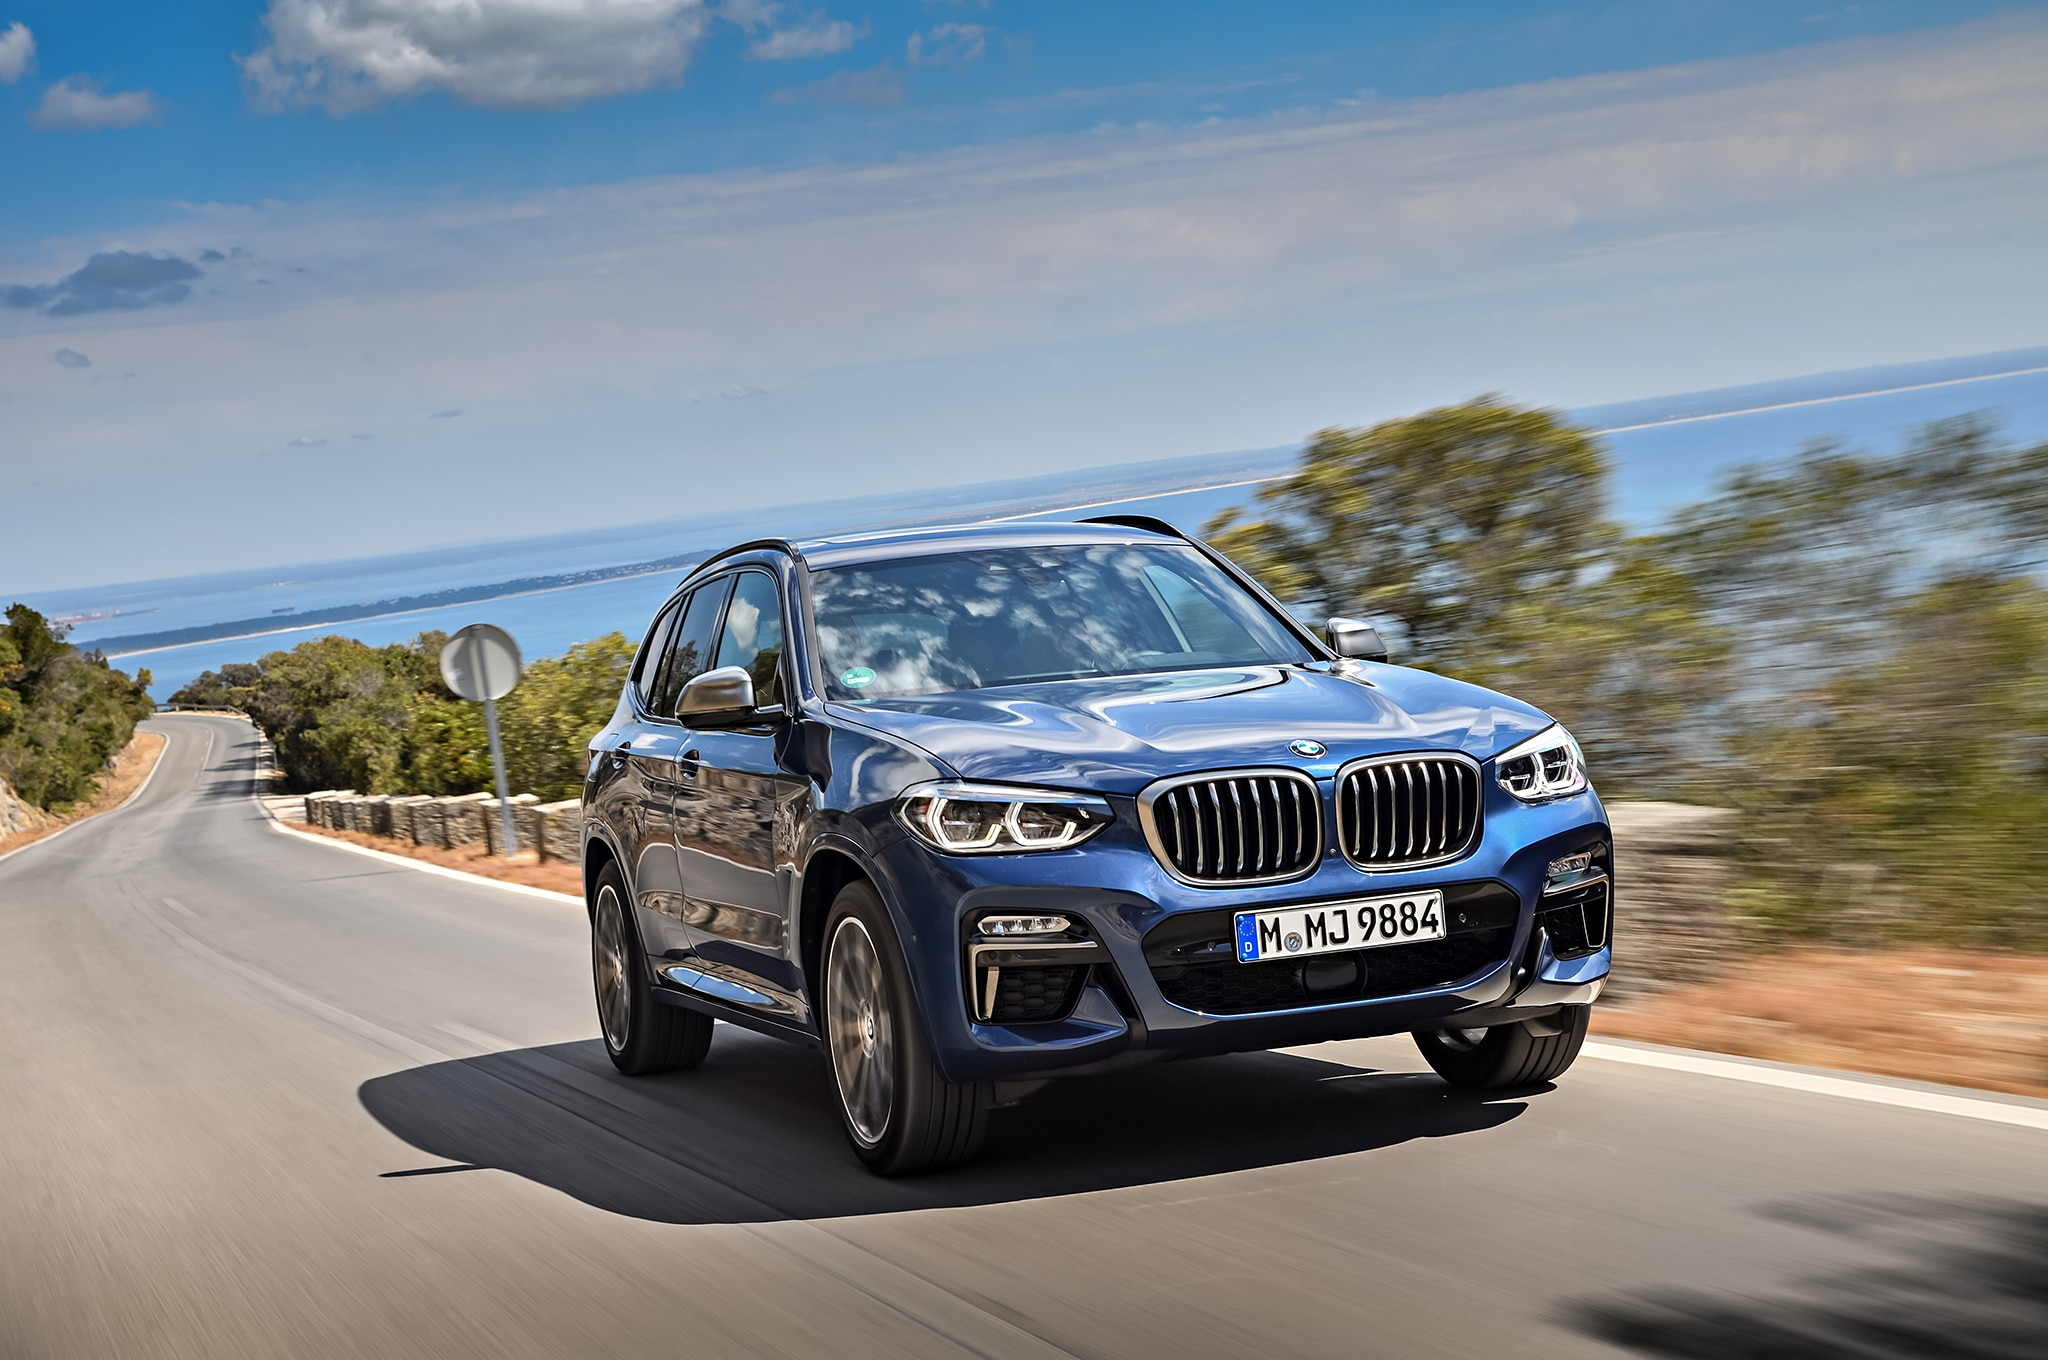 2018 BMW X3 M40i Front Three Quarter In Motion 42